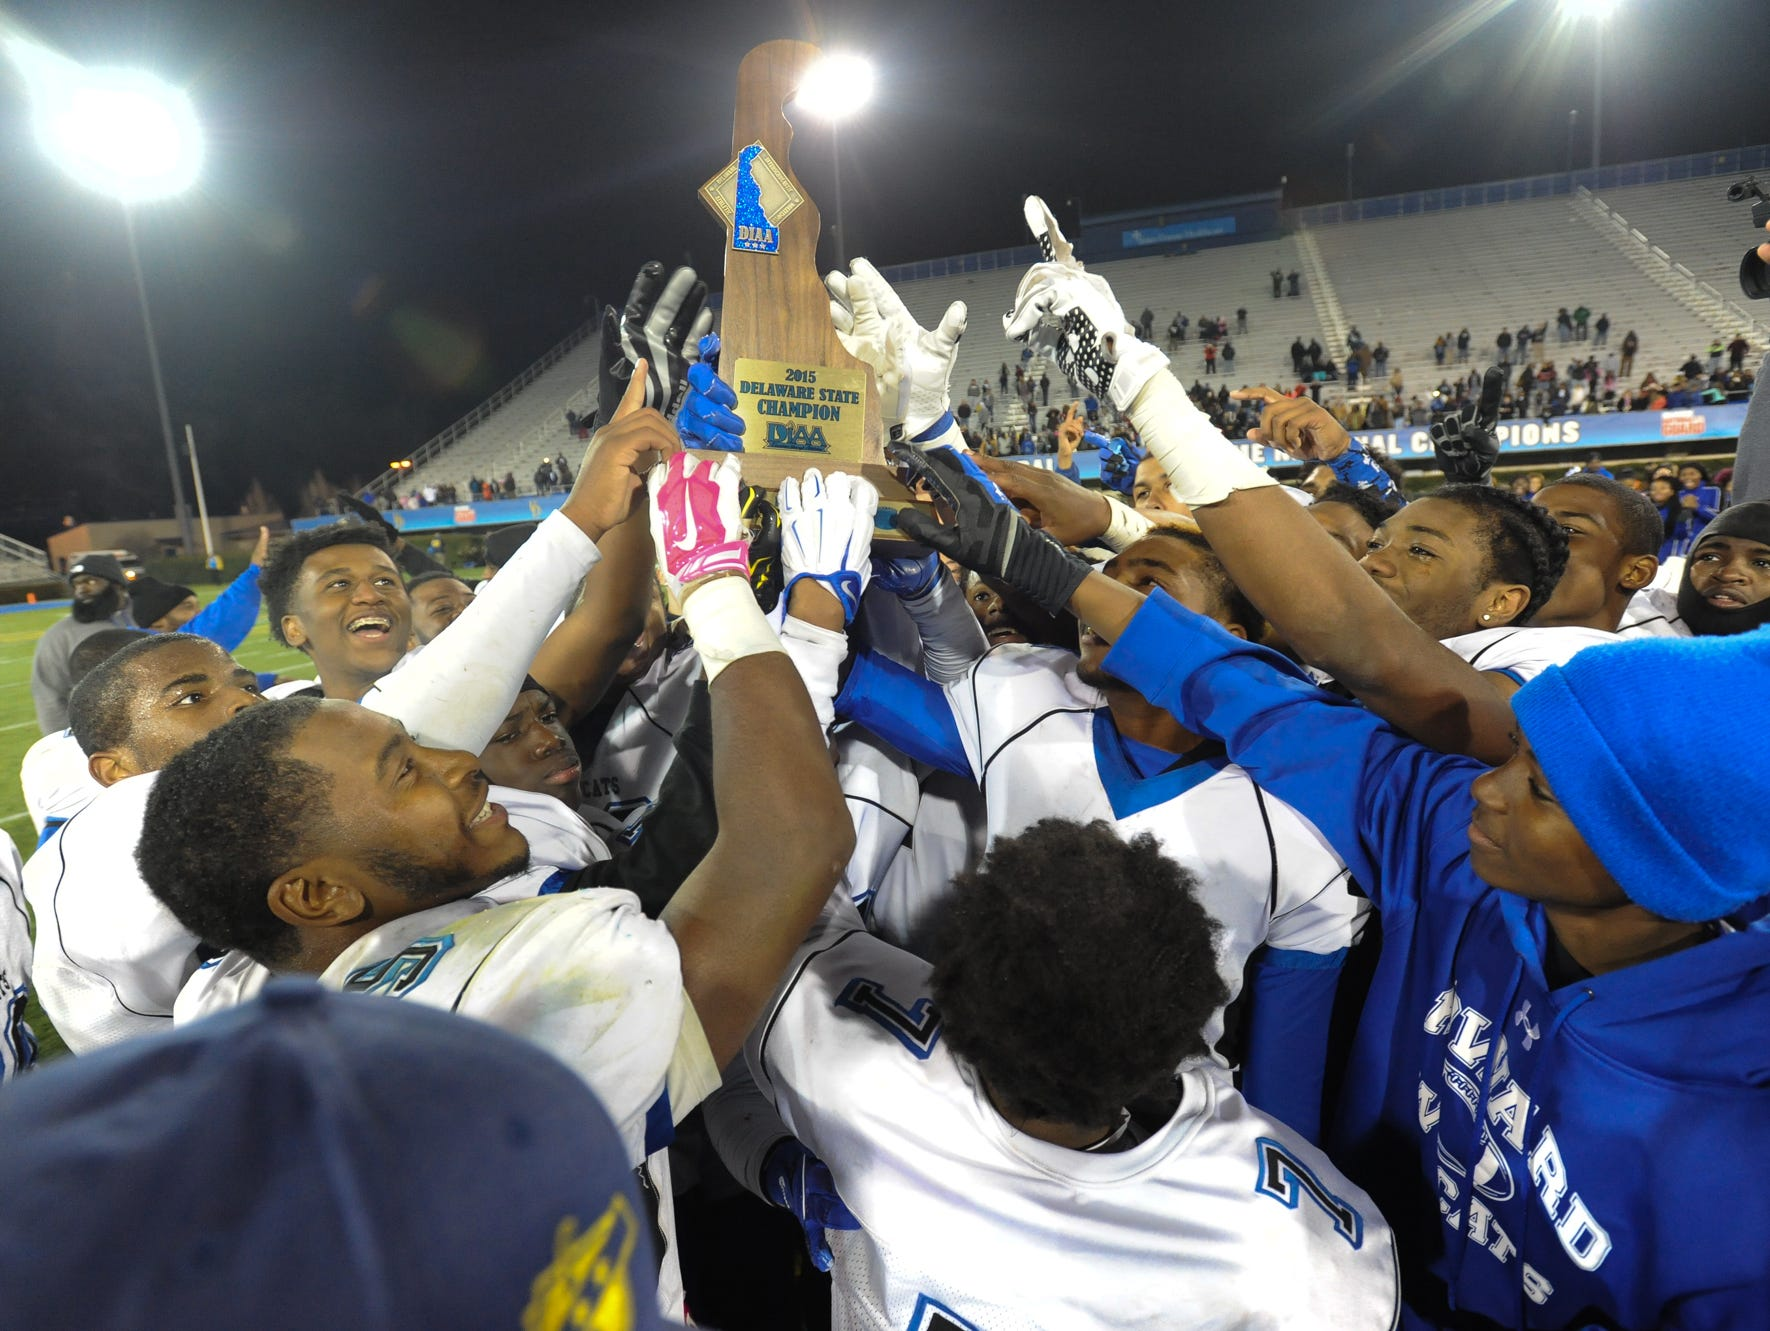 Howard players celebrate their 28-13 win over St. Georges in the DIAA Division II championship game Saturday night at Delaware Stadium.